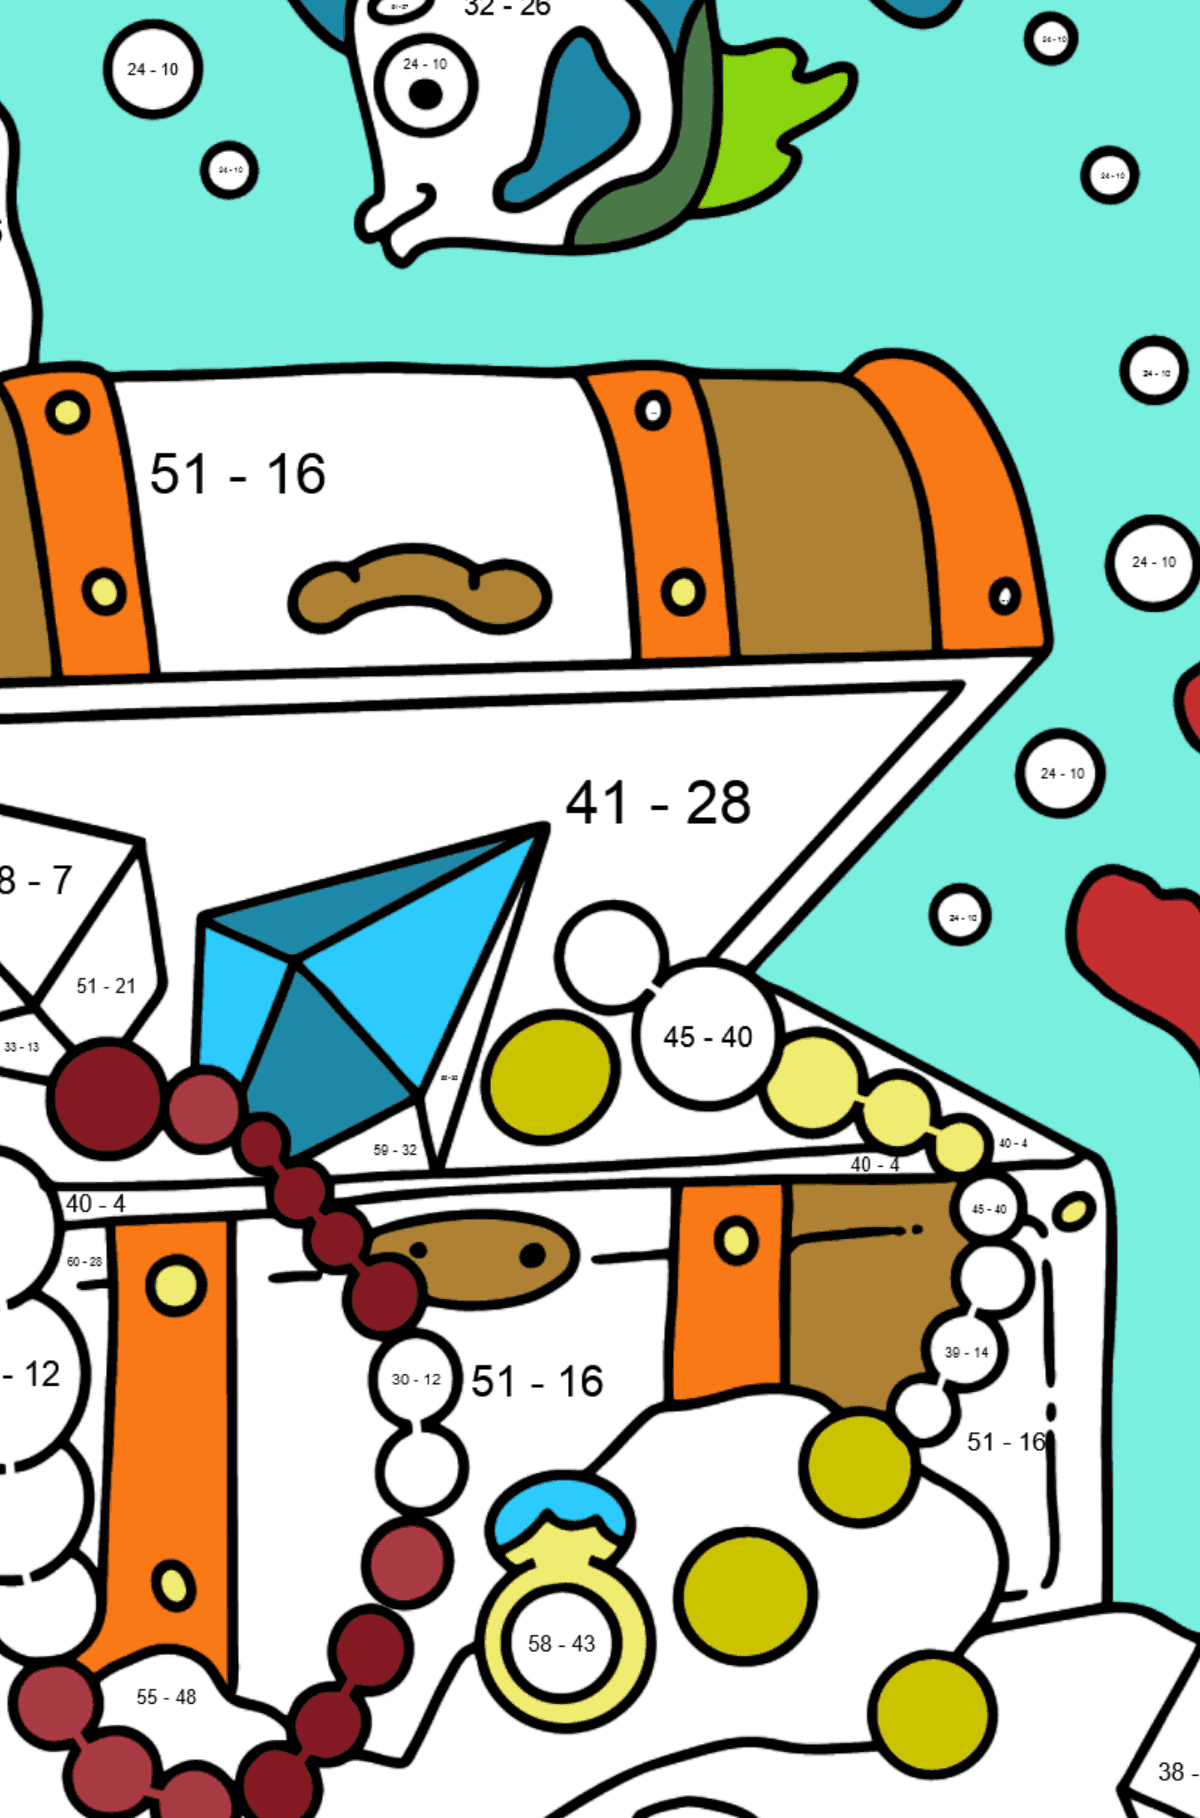 Coloring Page - A Fish is Taking a Peek at a Treasure - Math Coloring - Subtraction for Kids